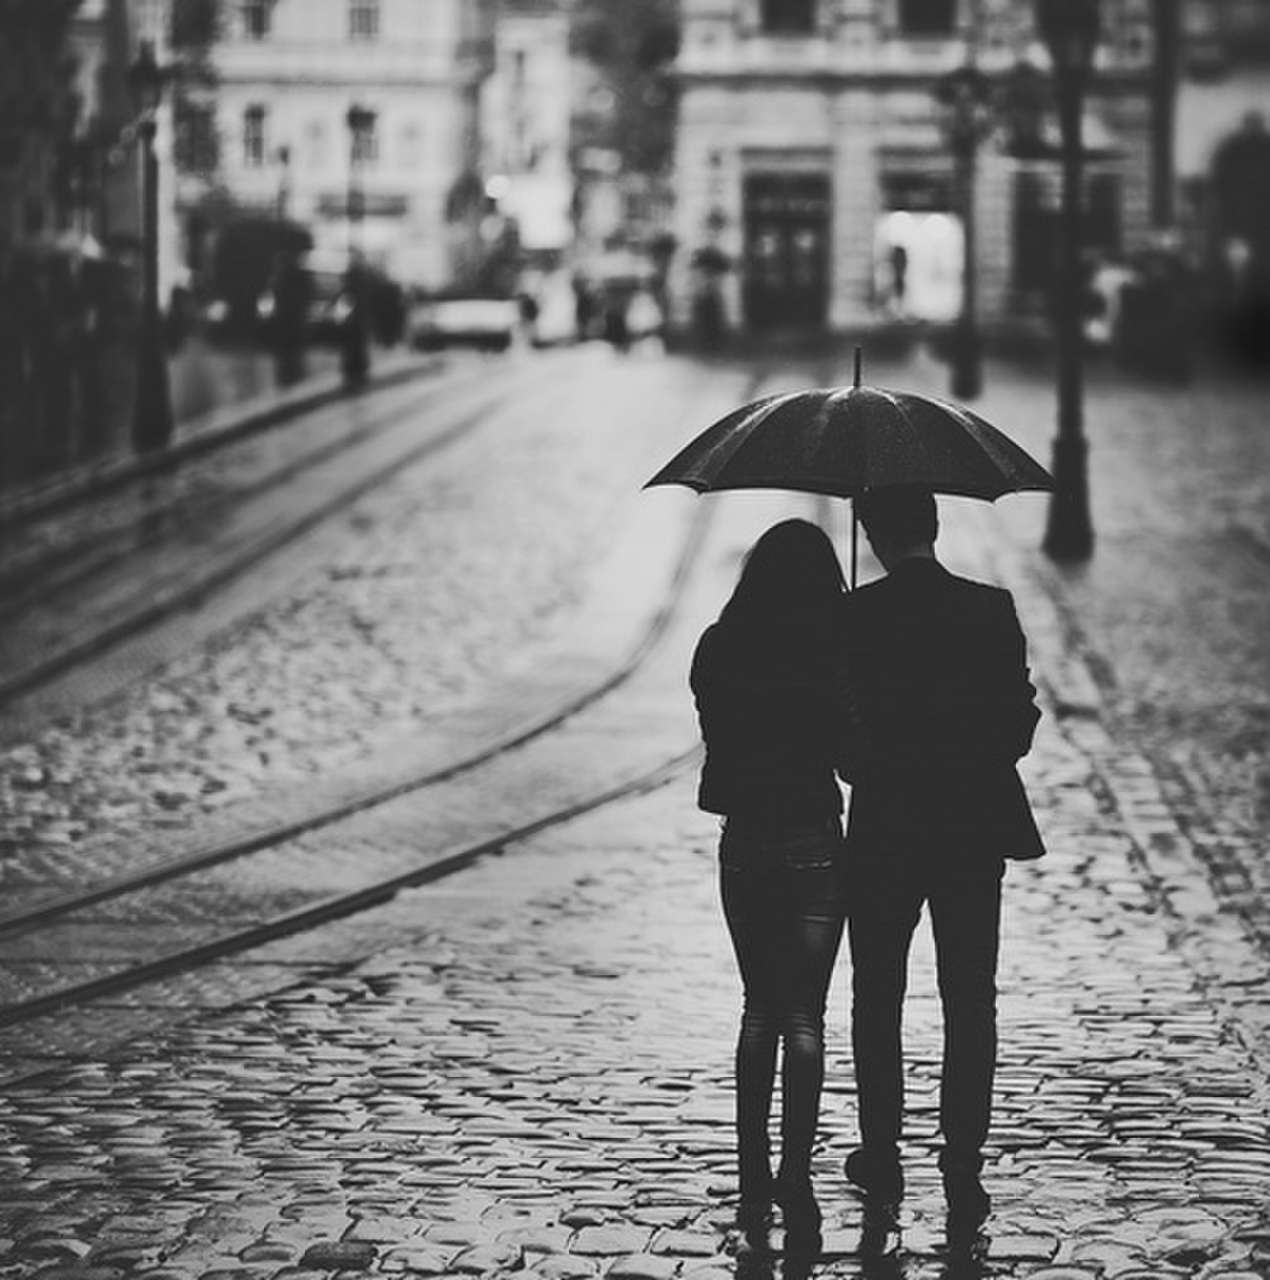 blac, black, black & white, black and white, boy, boys, boyz, couple, cute, door, girl, girls, girlz, gray, hair, heart, heart this, jacket, jeans, kiss, light, people, rain, roud, shirt, shoe, shoes, tree, umbrella, white